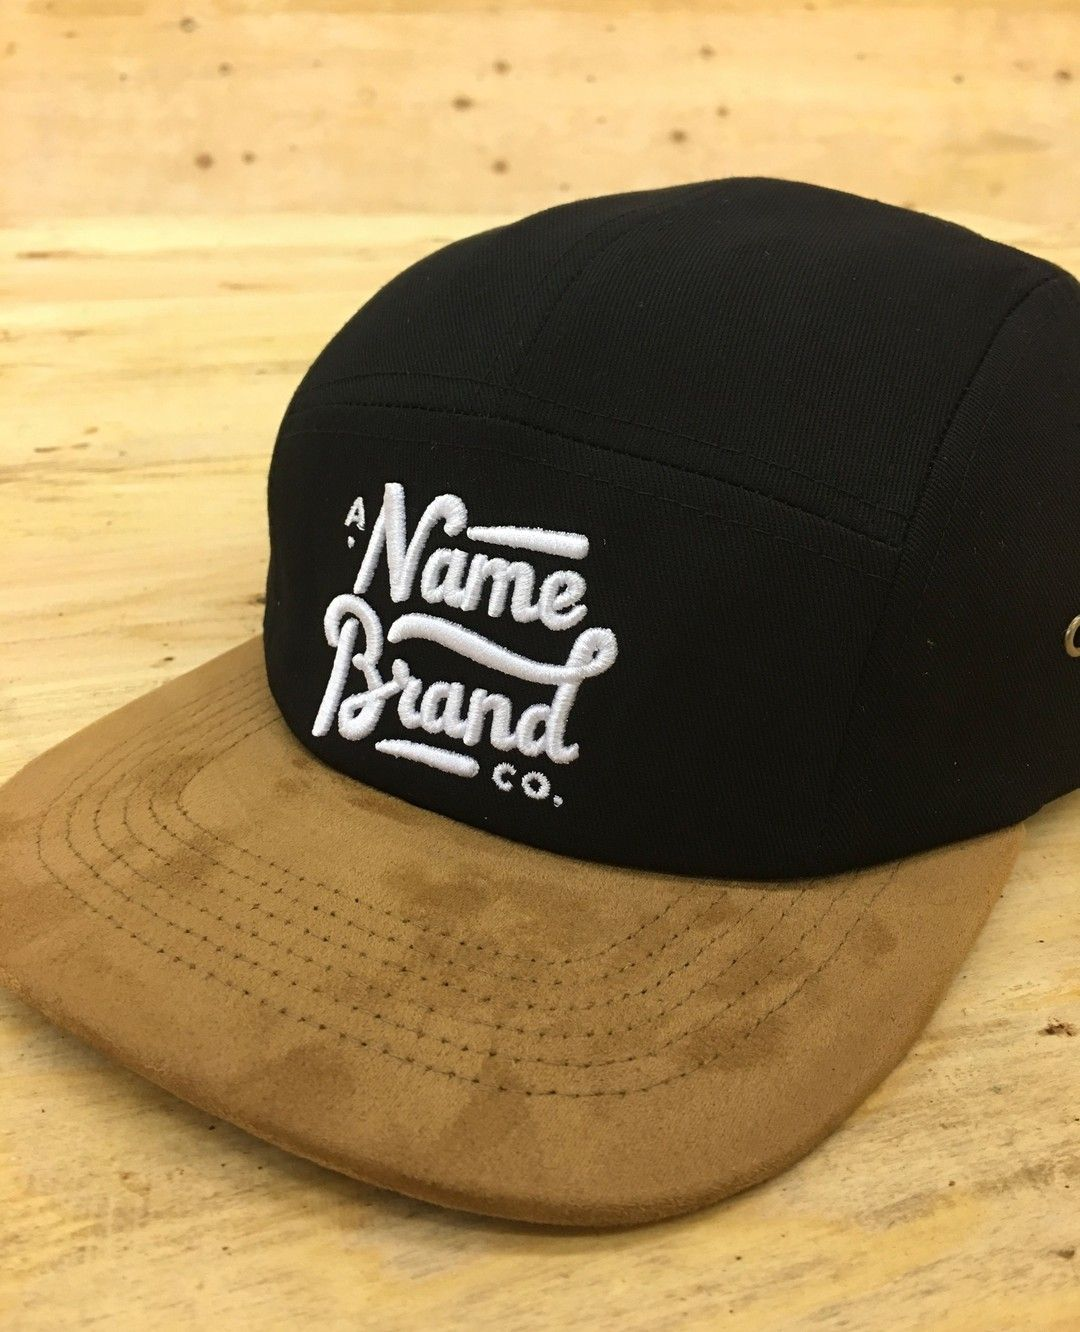 5 Panel Hat With 3d Embroidery Work For Anbco Minimums Starting As Low As 12pcs For Our Blank Embroidery Program As A Pl Custom Hats 5 Panel Hat Hats